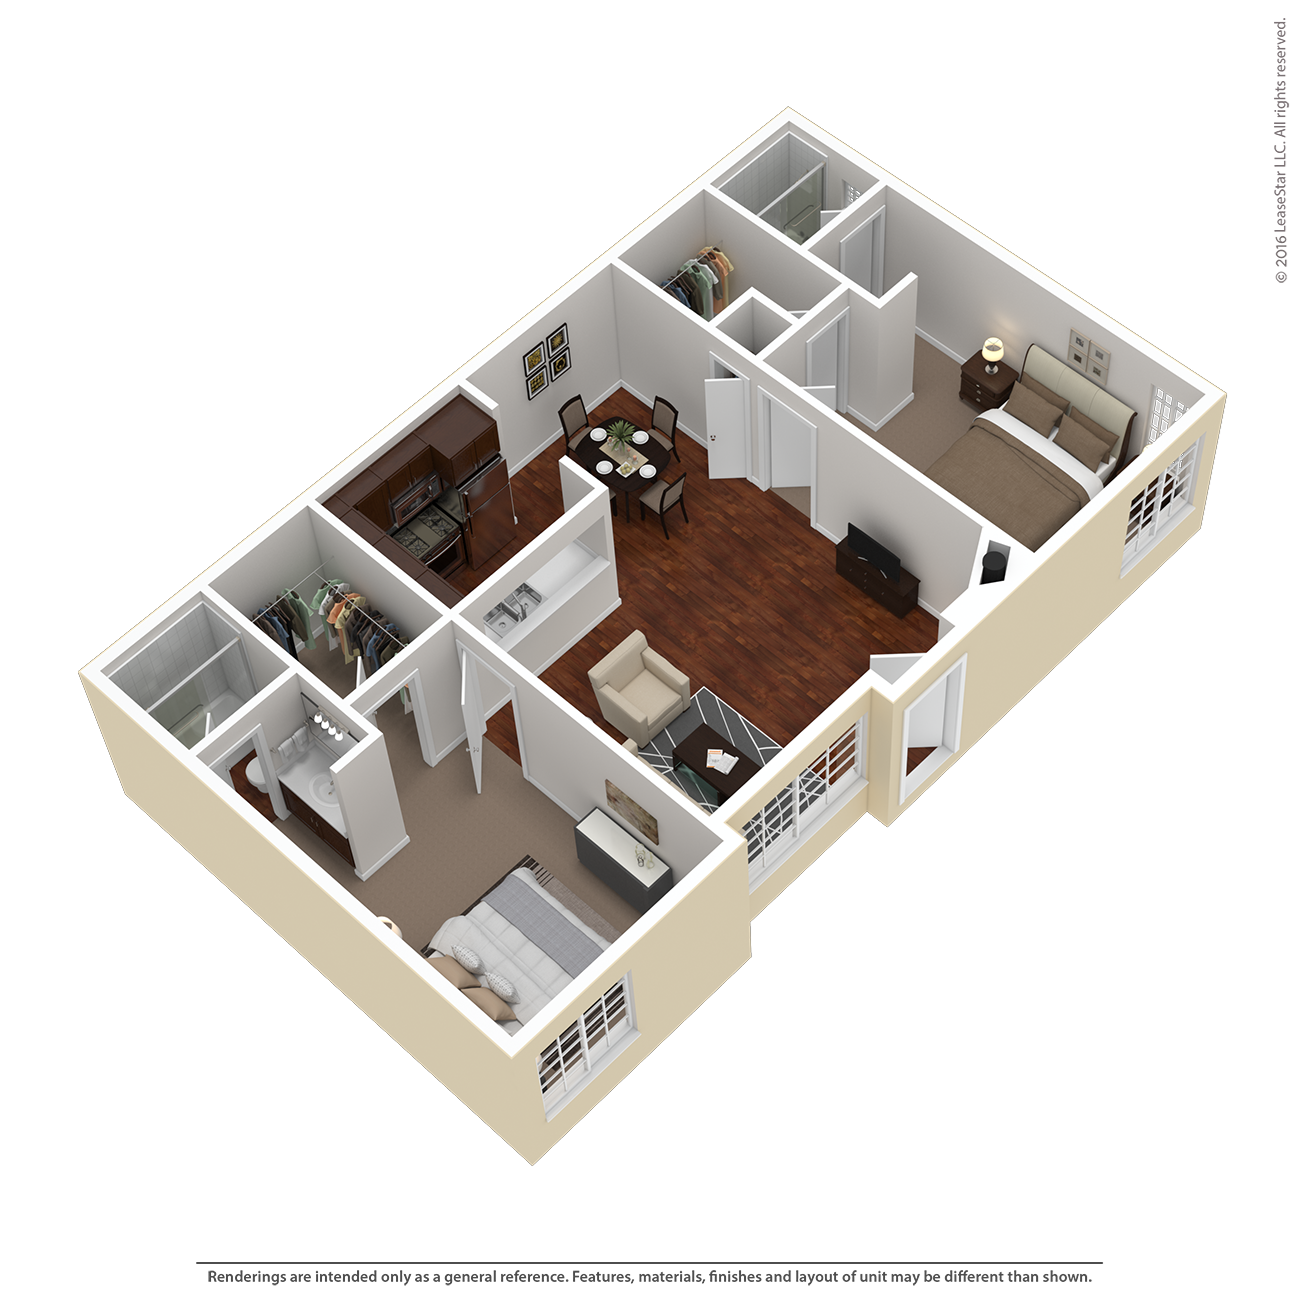 2 Bed 2 Bath Plan D Floor Plan 5